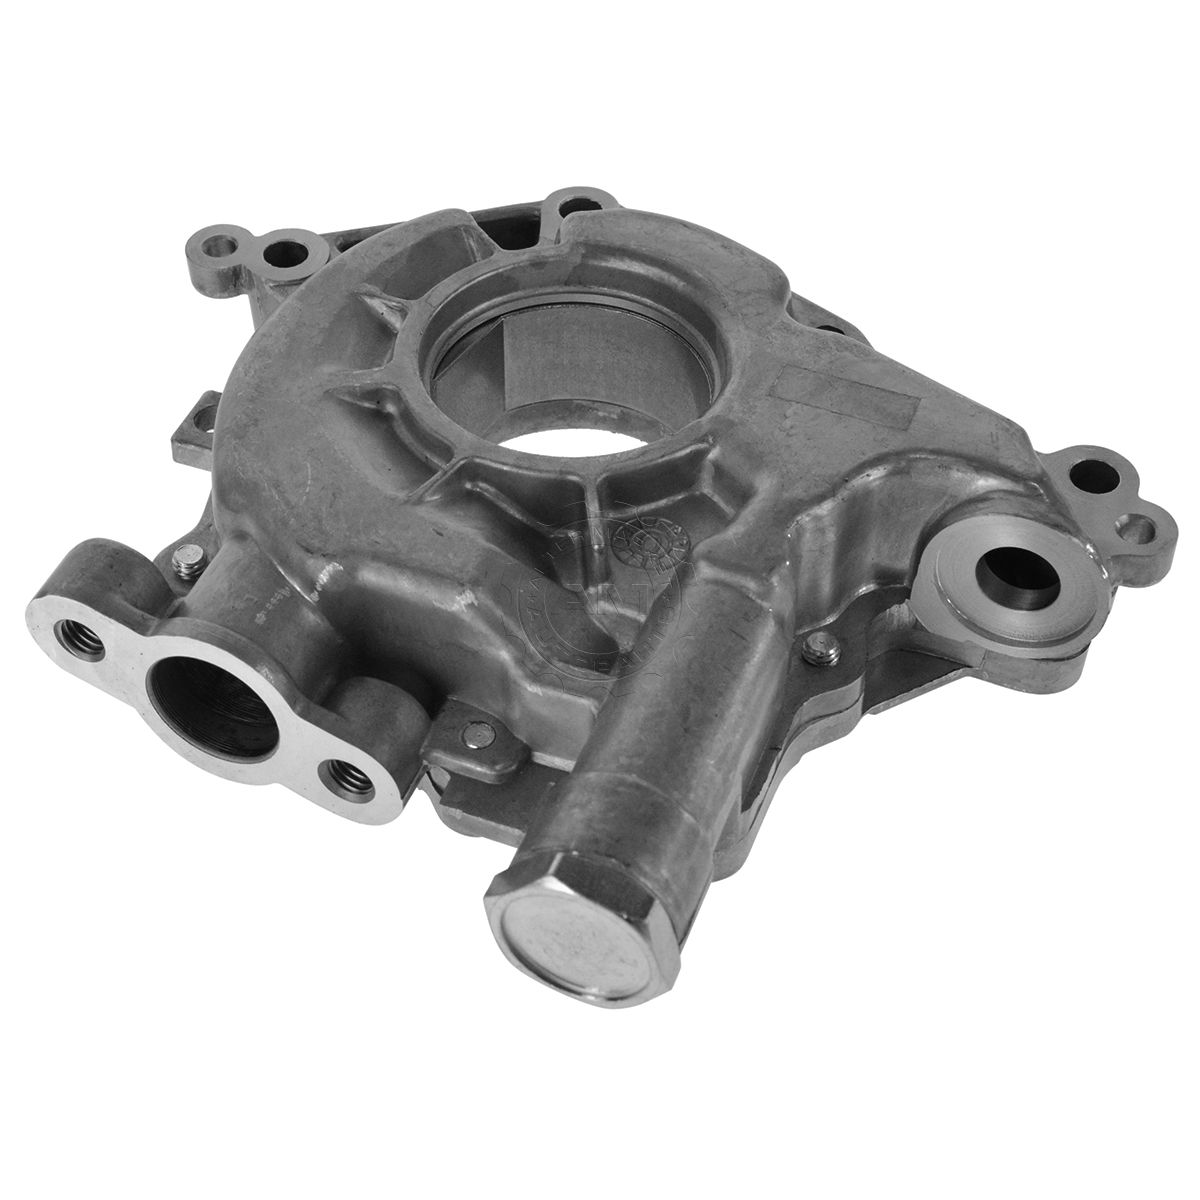 engine oil pump for nissan altima maxima quest v6 3 5l 192659206138 ebay. Black Bedroom Furniture Sets. Home Design Ideas